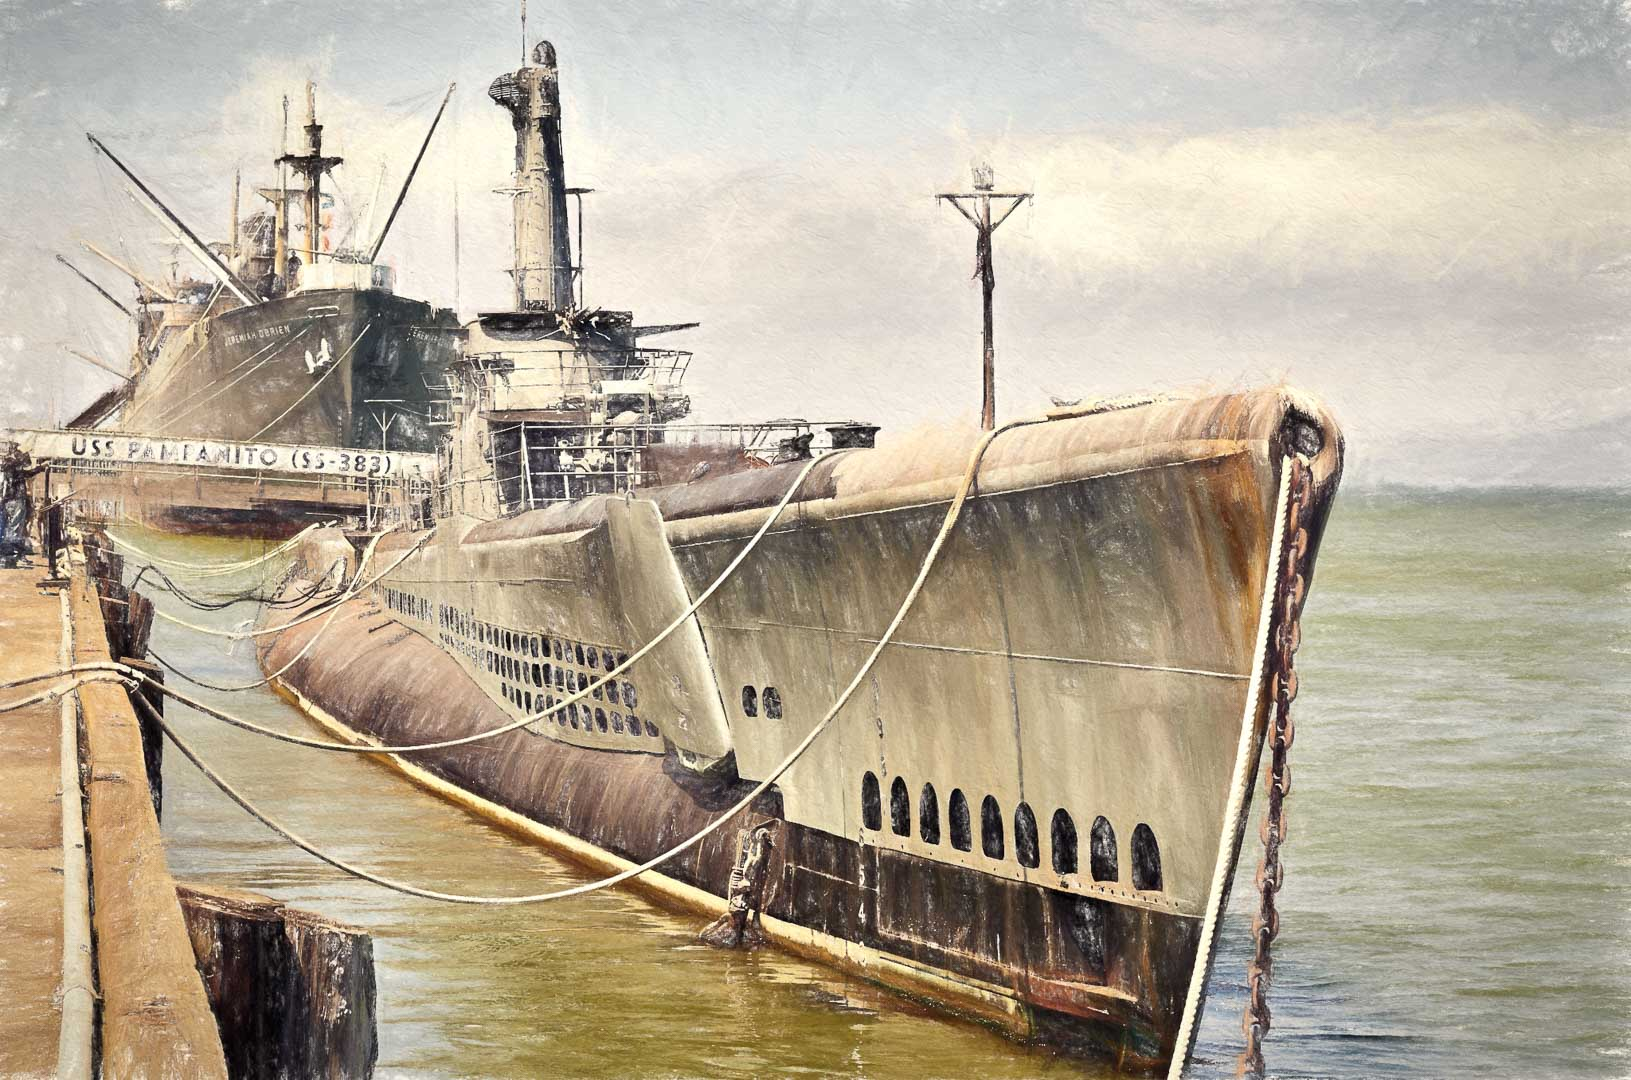 SAN FRANCISCO PAINTERLY OLD SHIPS